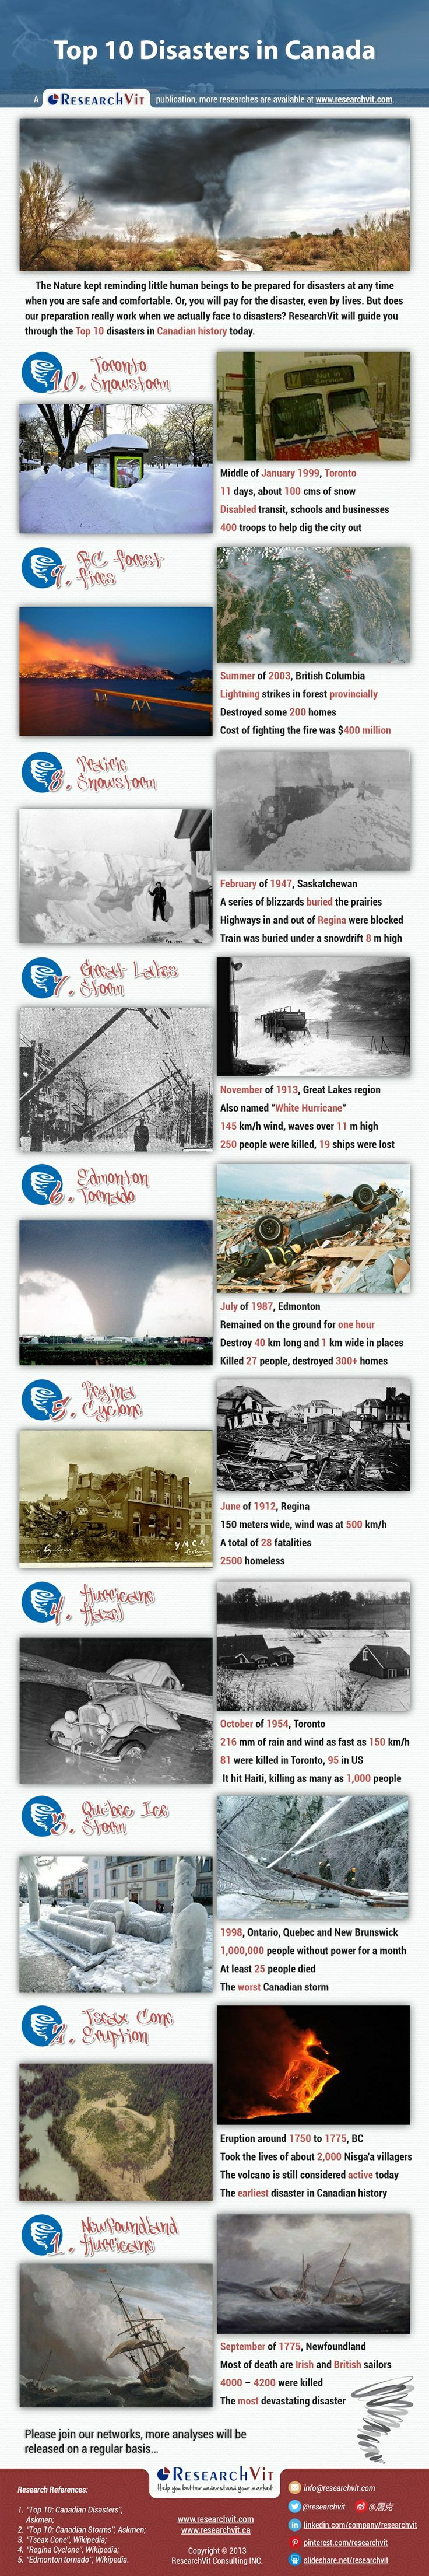 Top 10 Disasters in Canada - The Nature kept reminding little human beings to be prepared for disasters at any time when you are safe and comfortable. Or, you will pay for the disaster, even by lives. But does our preparation really work when we actually face to disasters?  ResearchVit will guide you through the Top 10 disasters in Canadian history today.